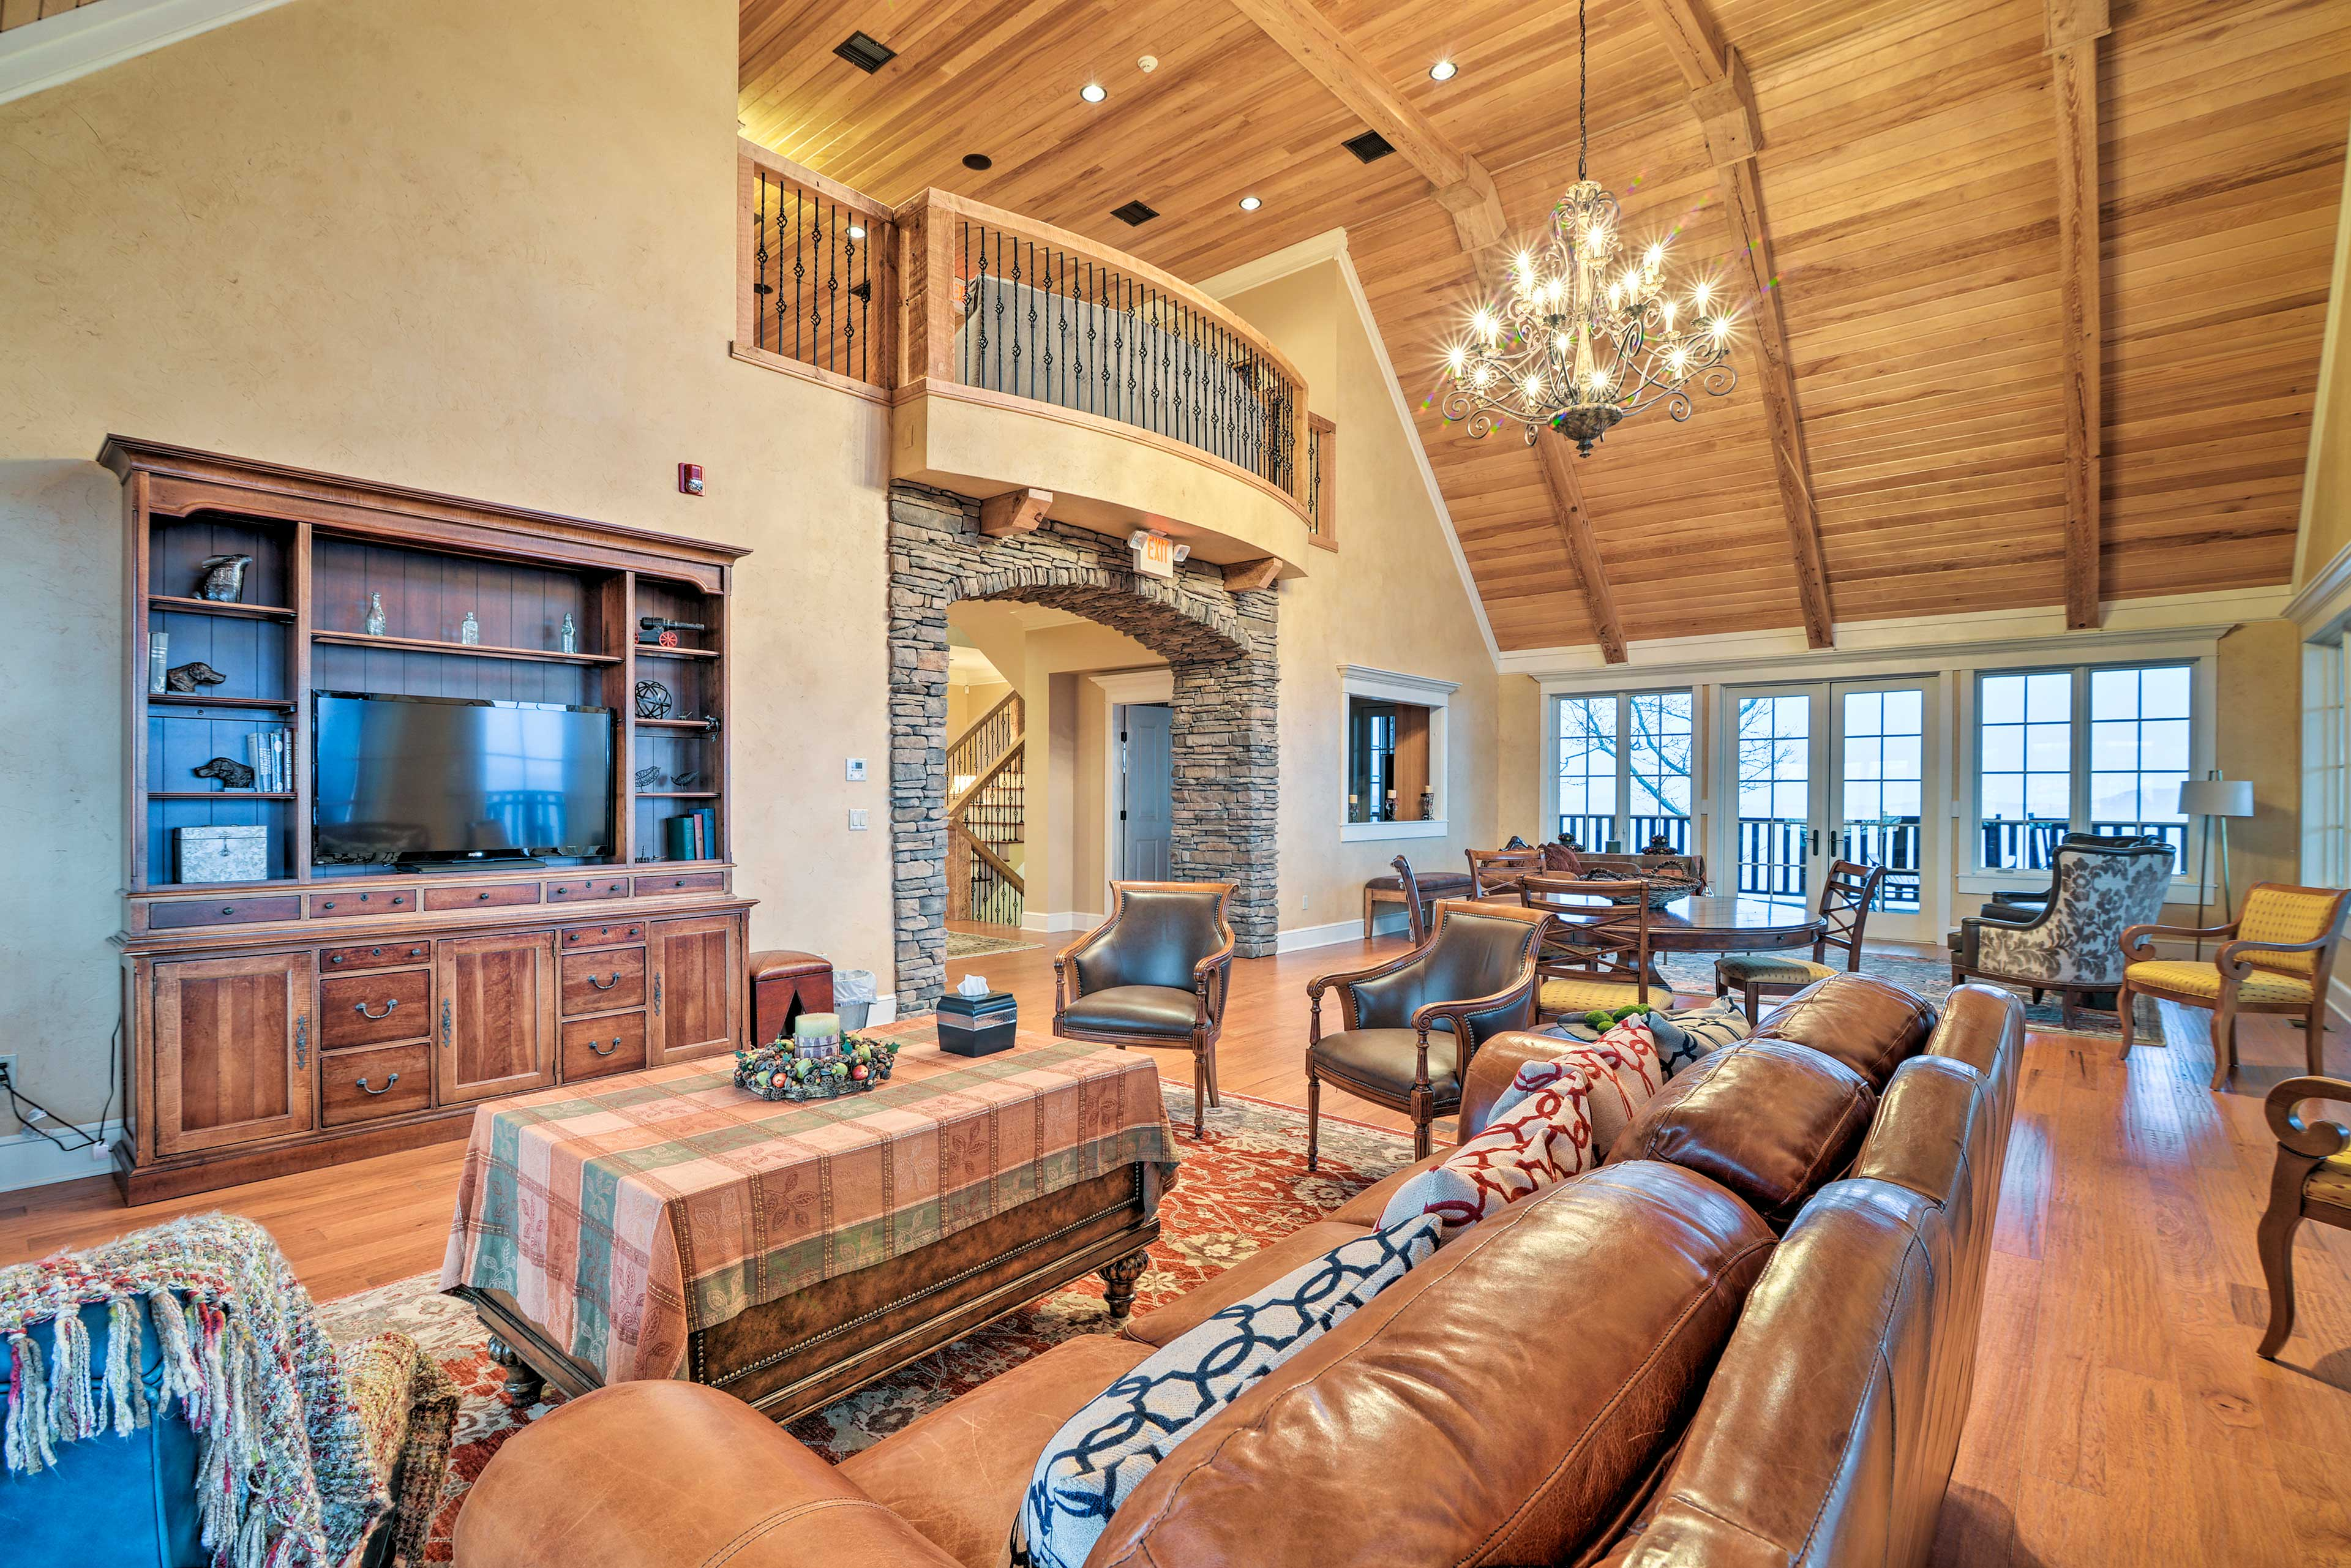 Chill out in the tastefully decorated community lodge.